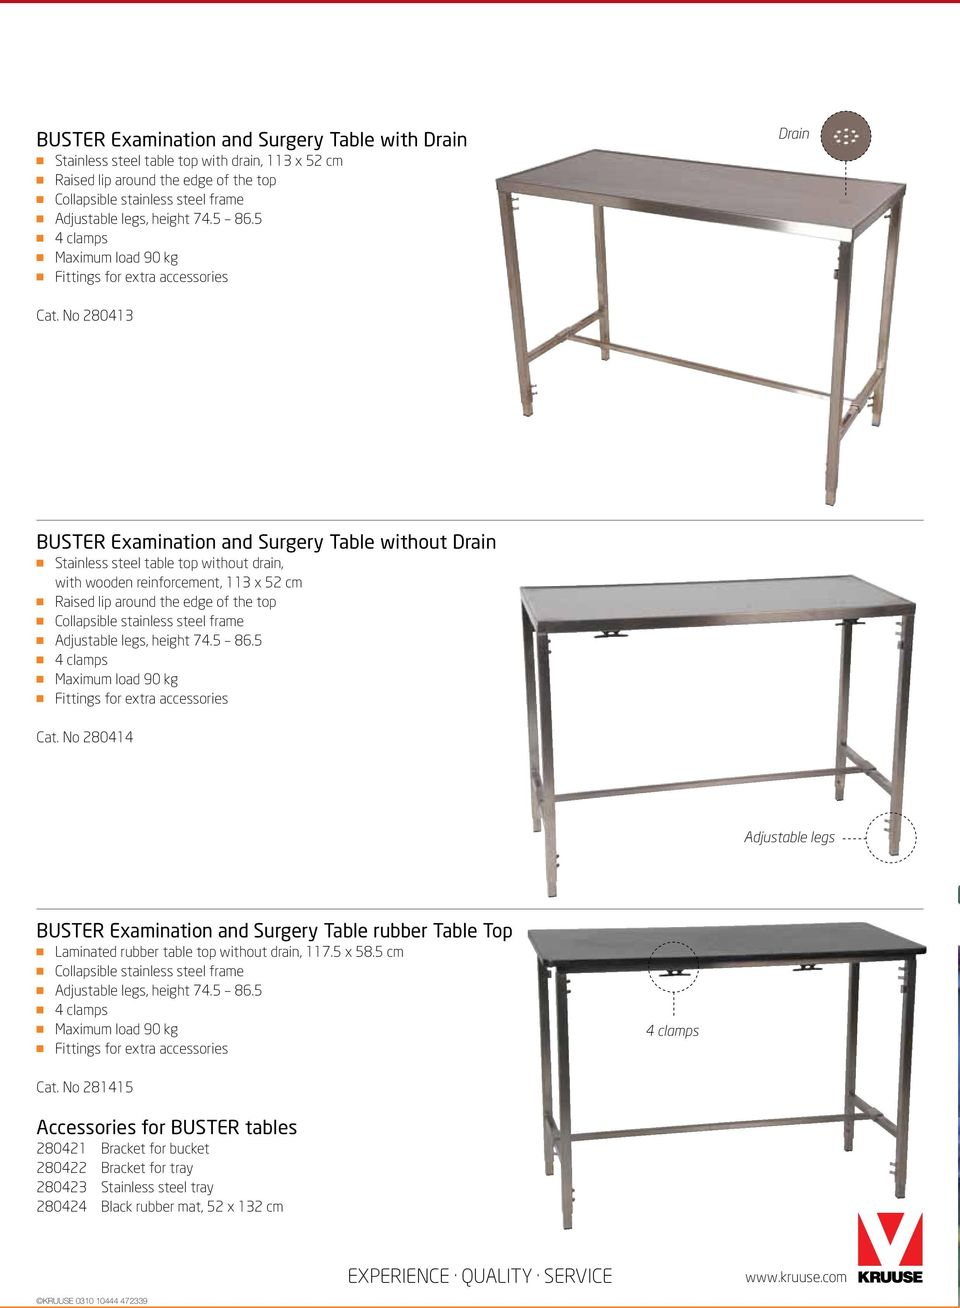 KRUUSE Small Animal Tables PDF - Stainless steel table with lip